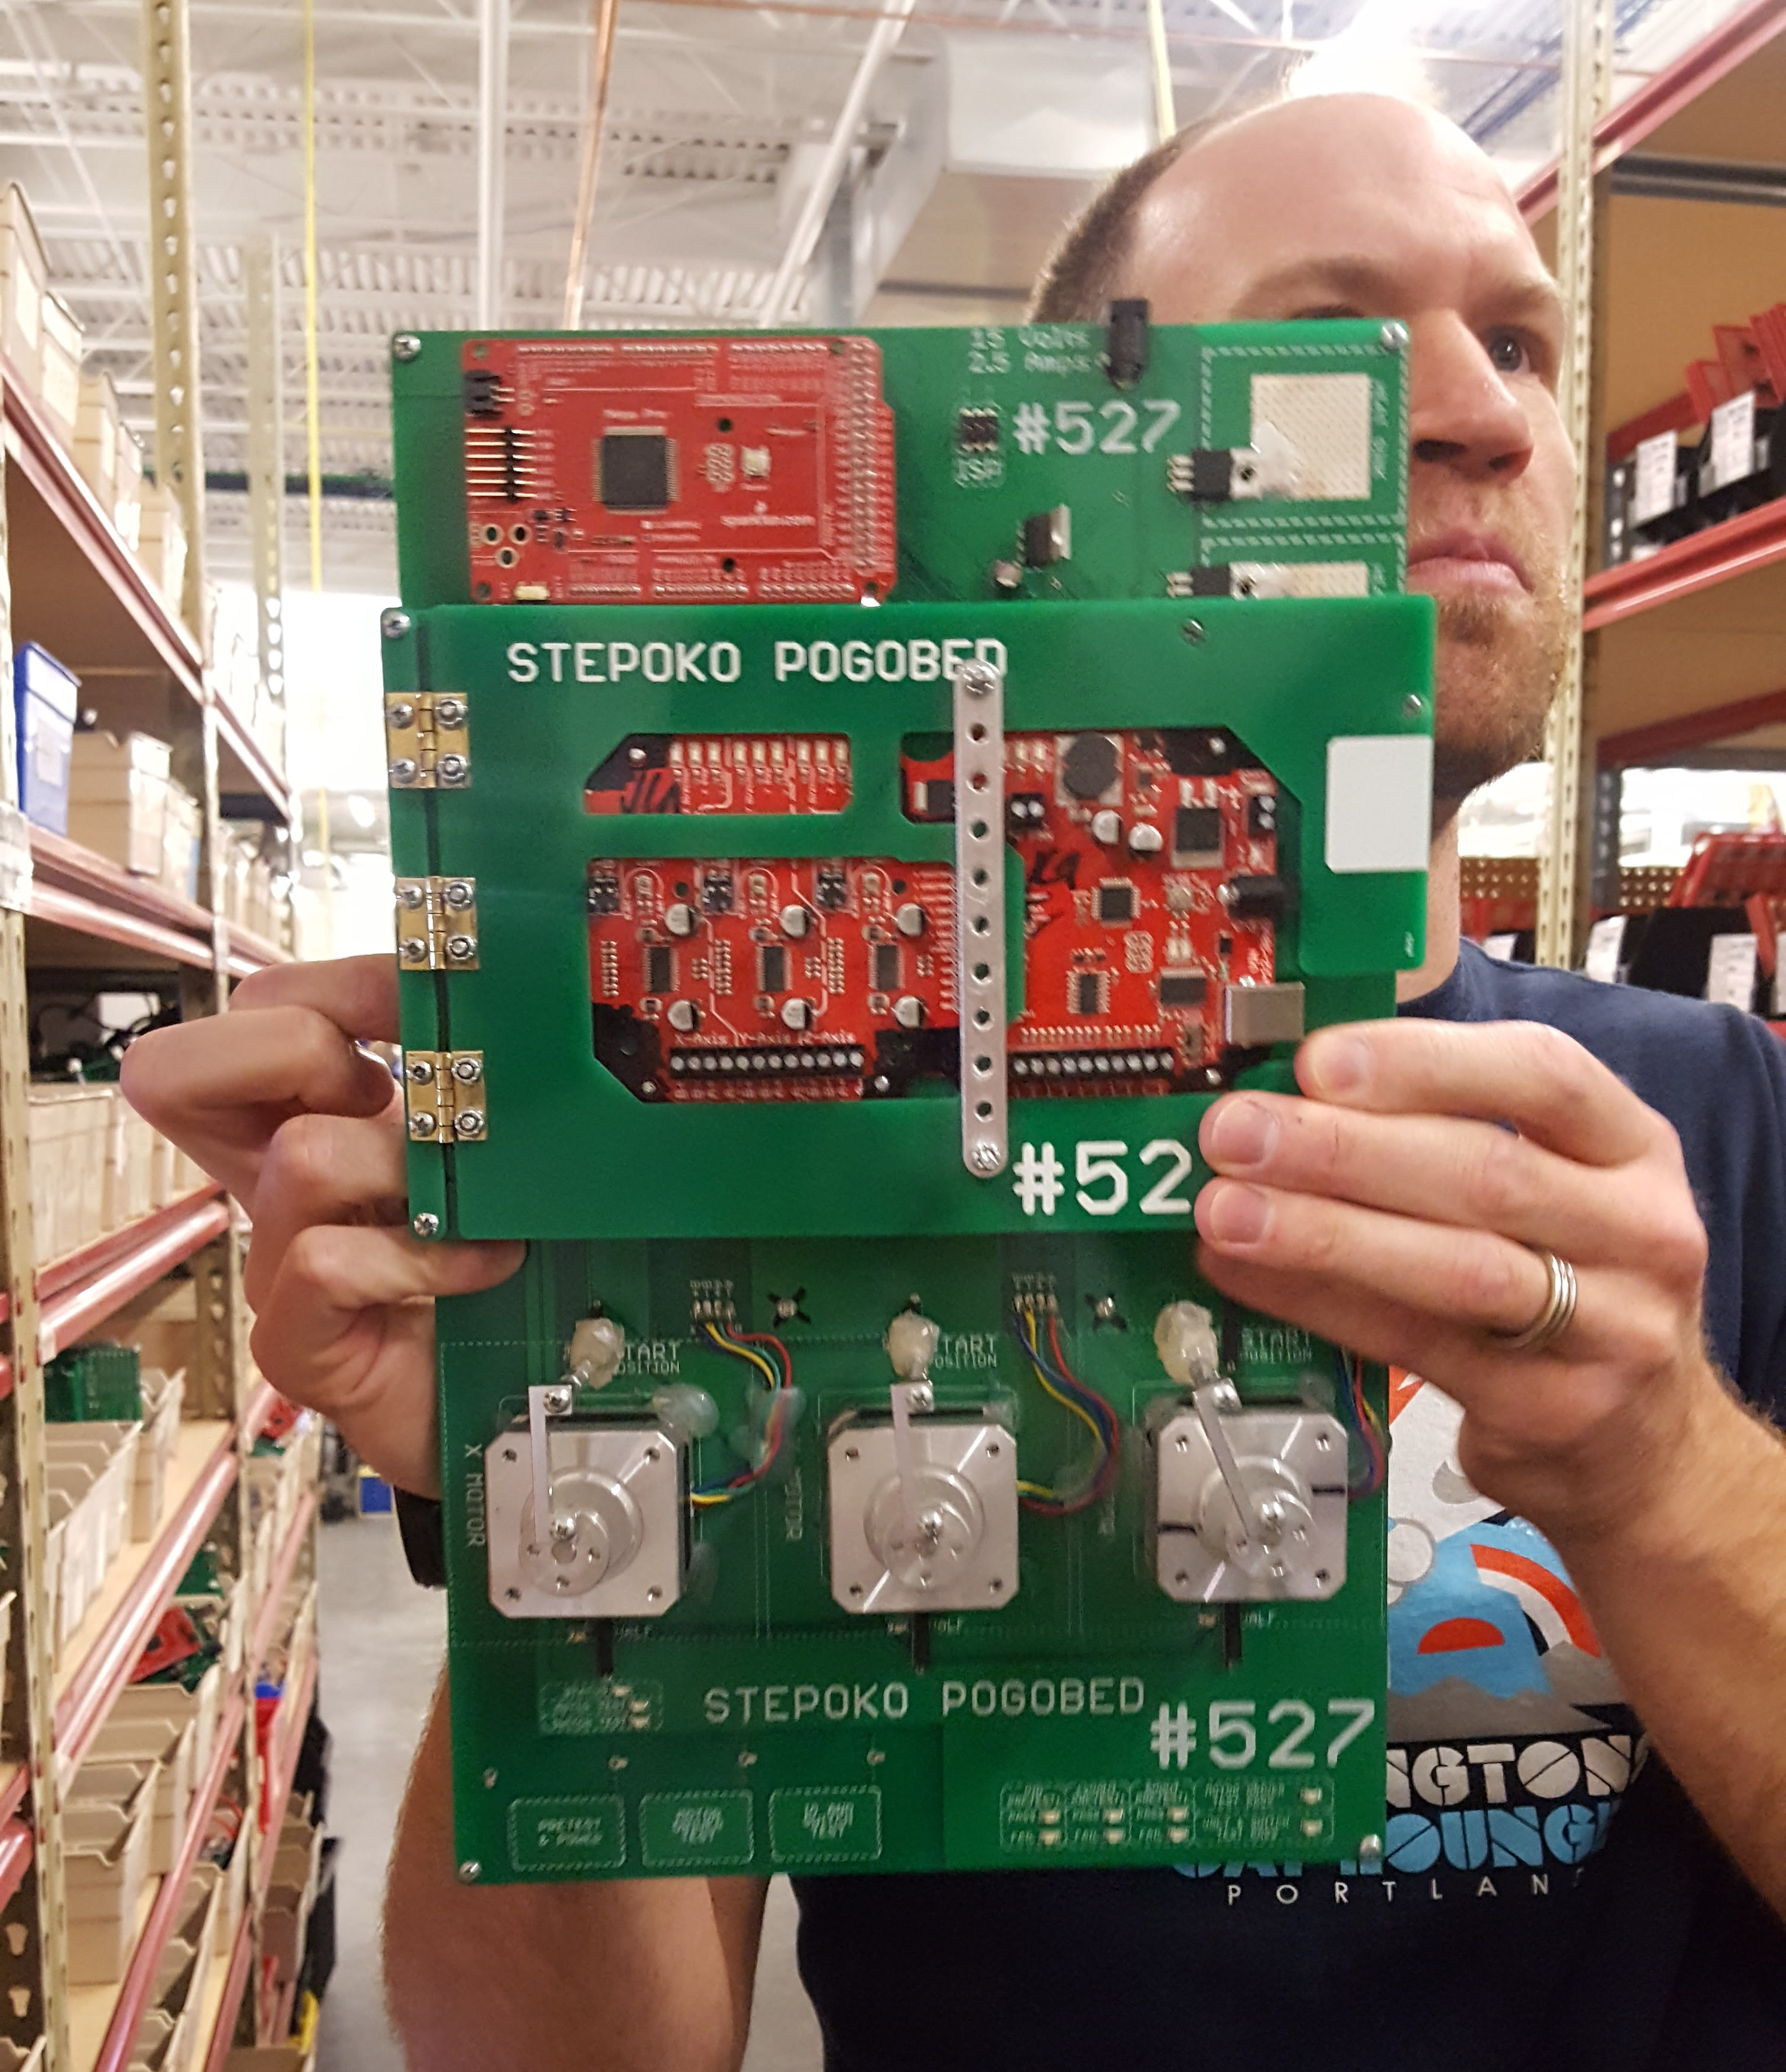 Tours of Sparkfun and Aleph Objects - Charles Guan - Medium